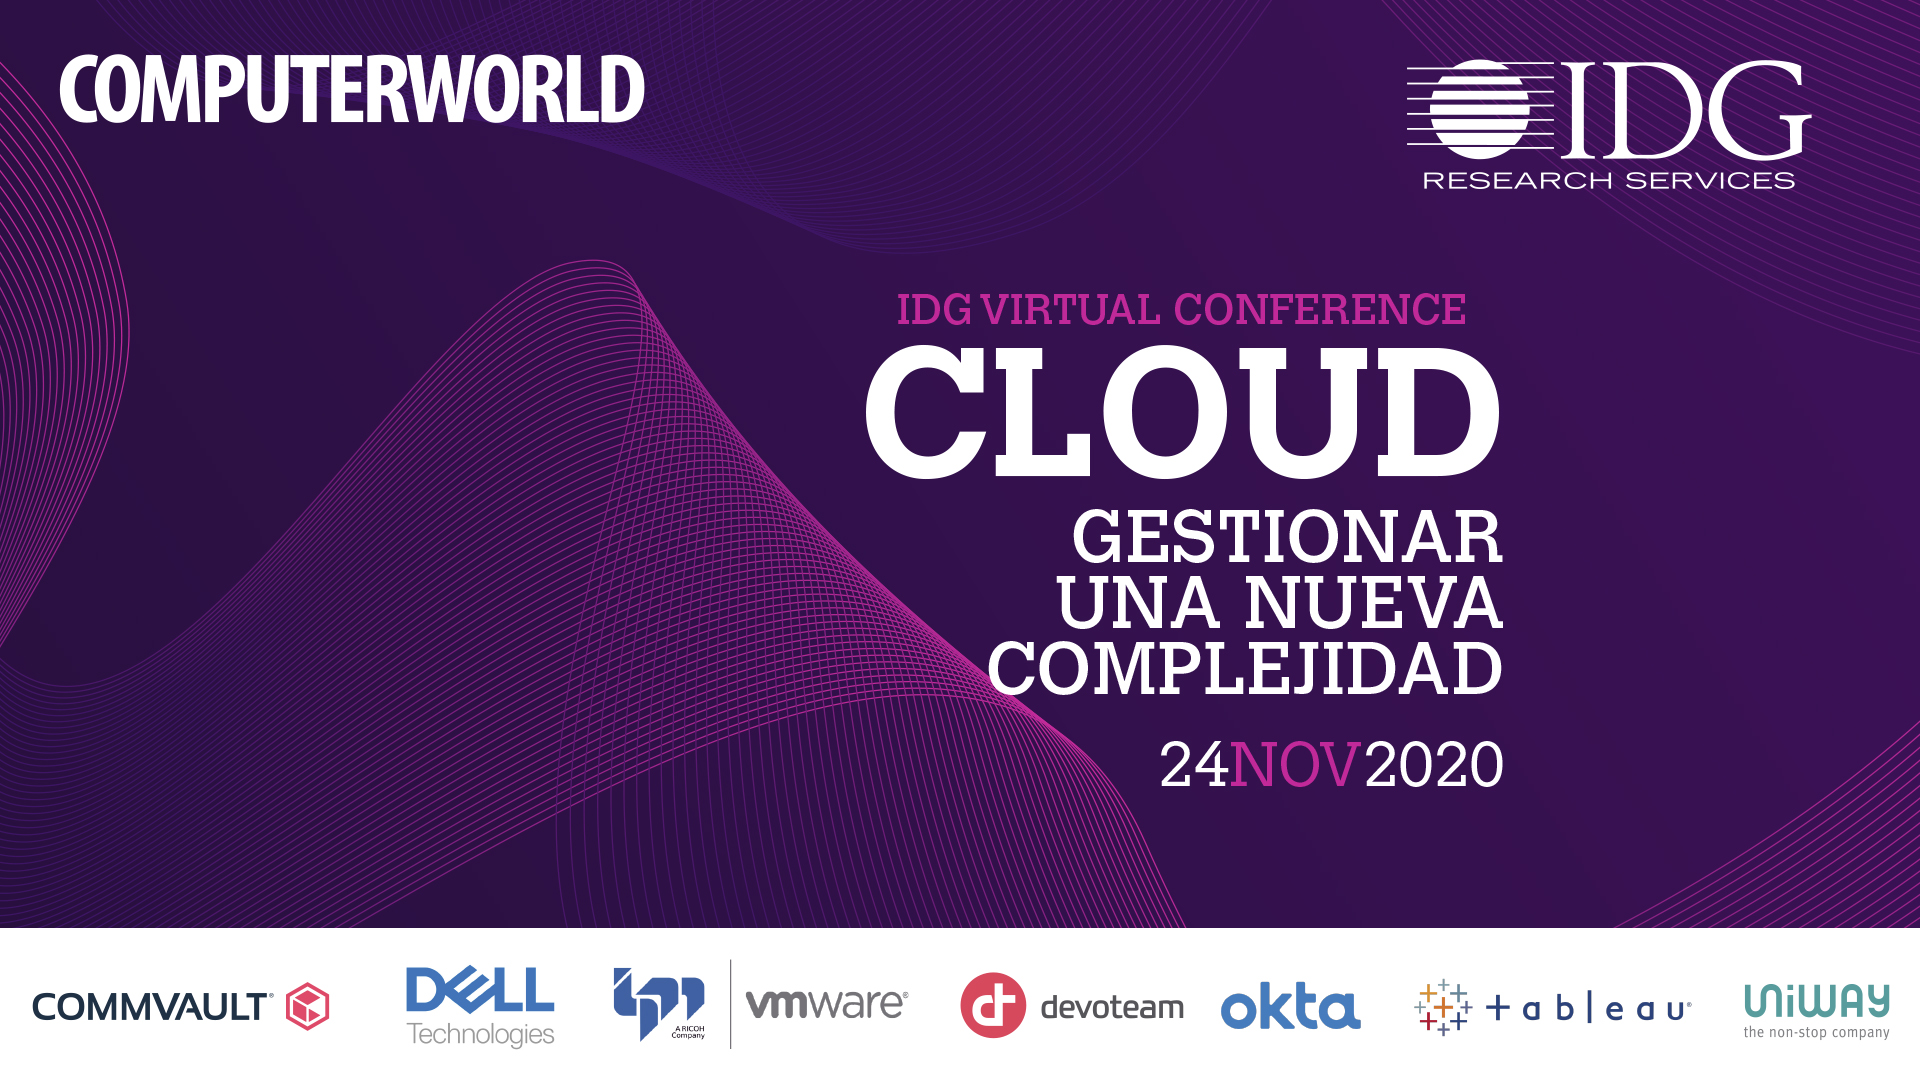 evento cloud 2020 (foto buena)